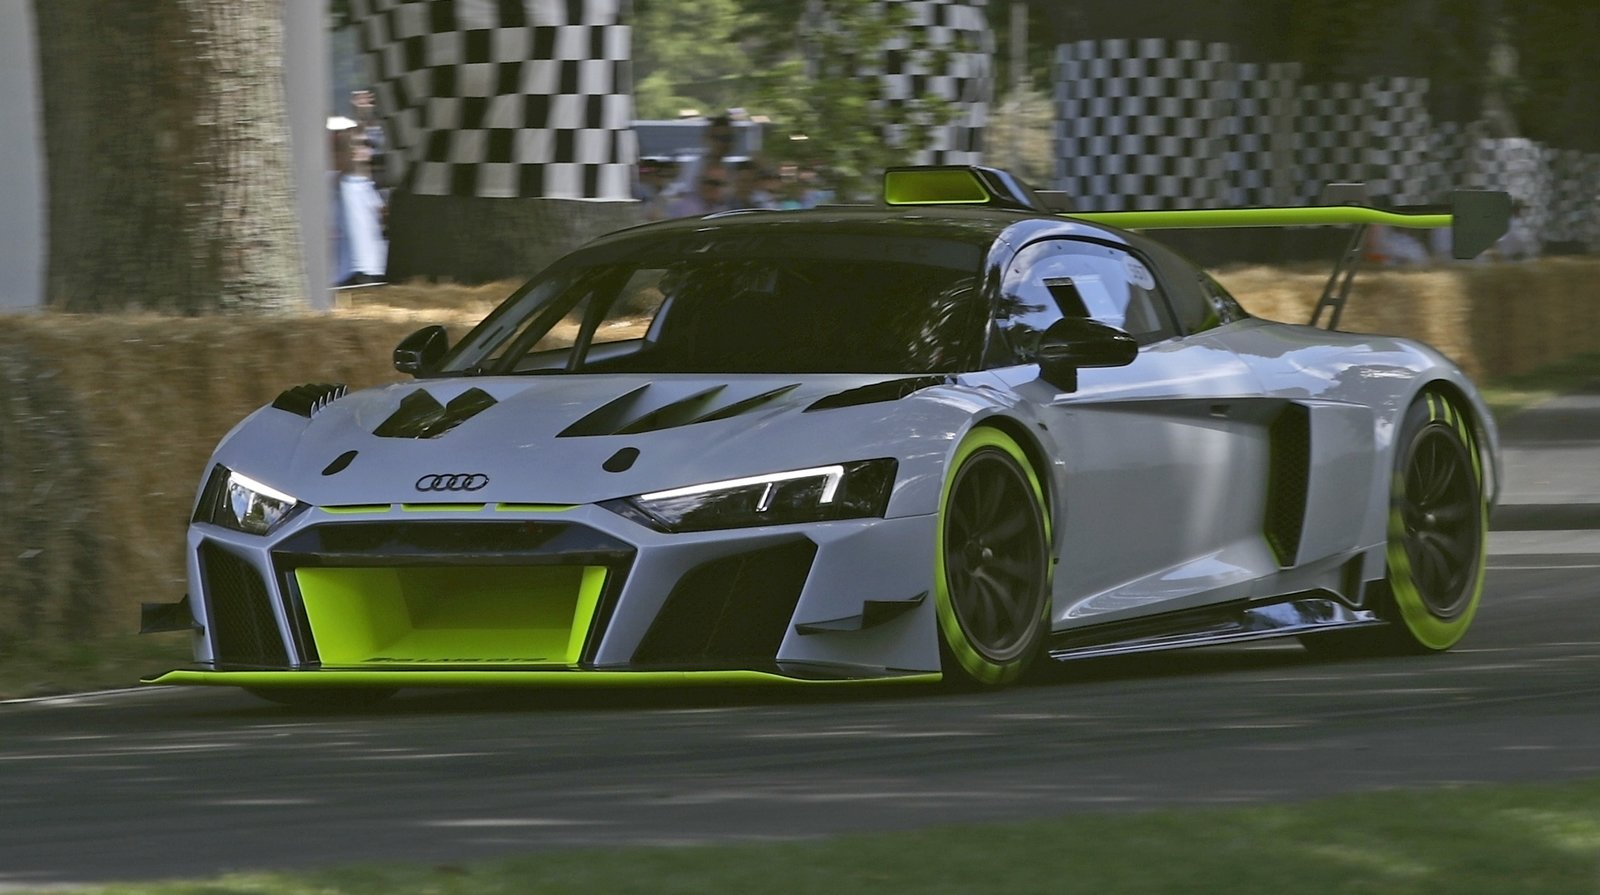 The 2020 Audi R8 Lms Gt2 Is The R8 We Deserve For The Road